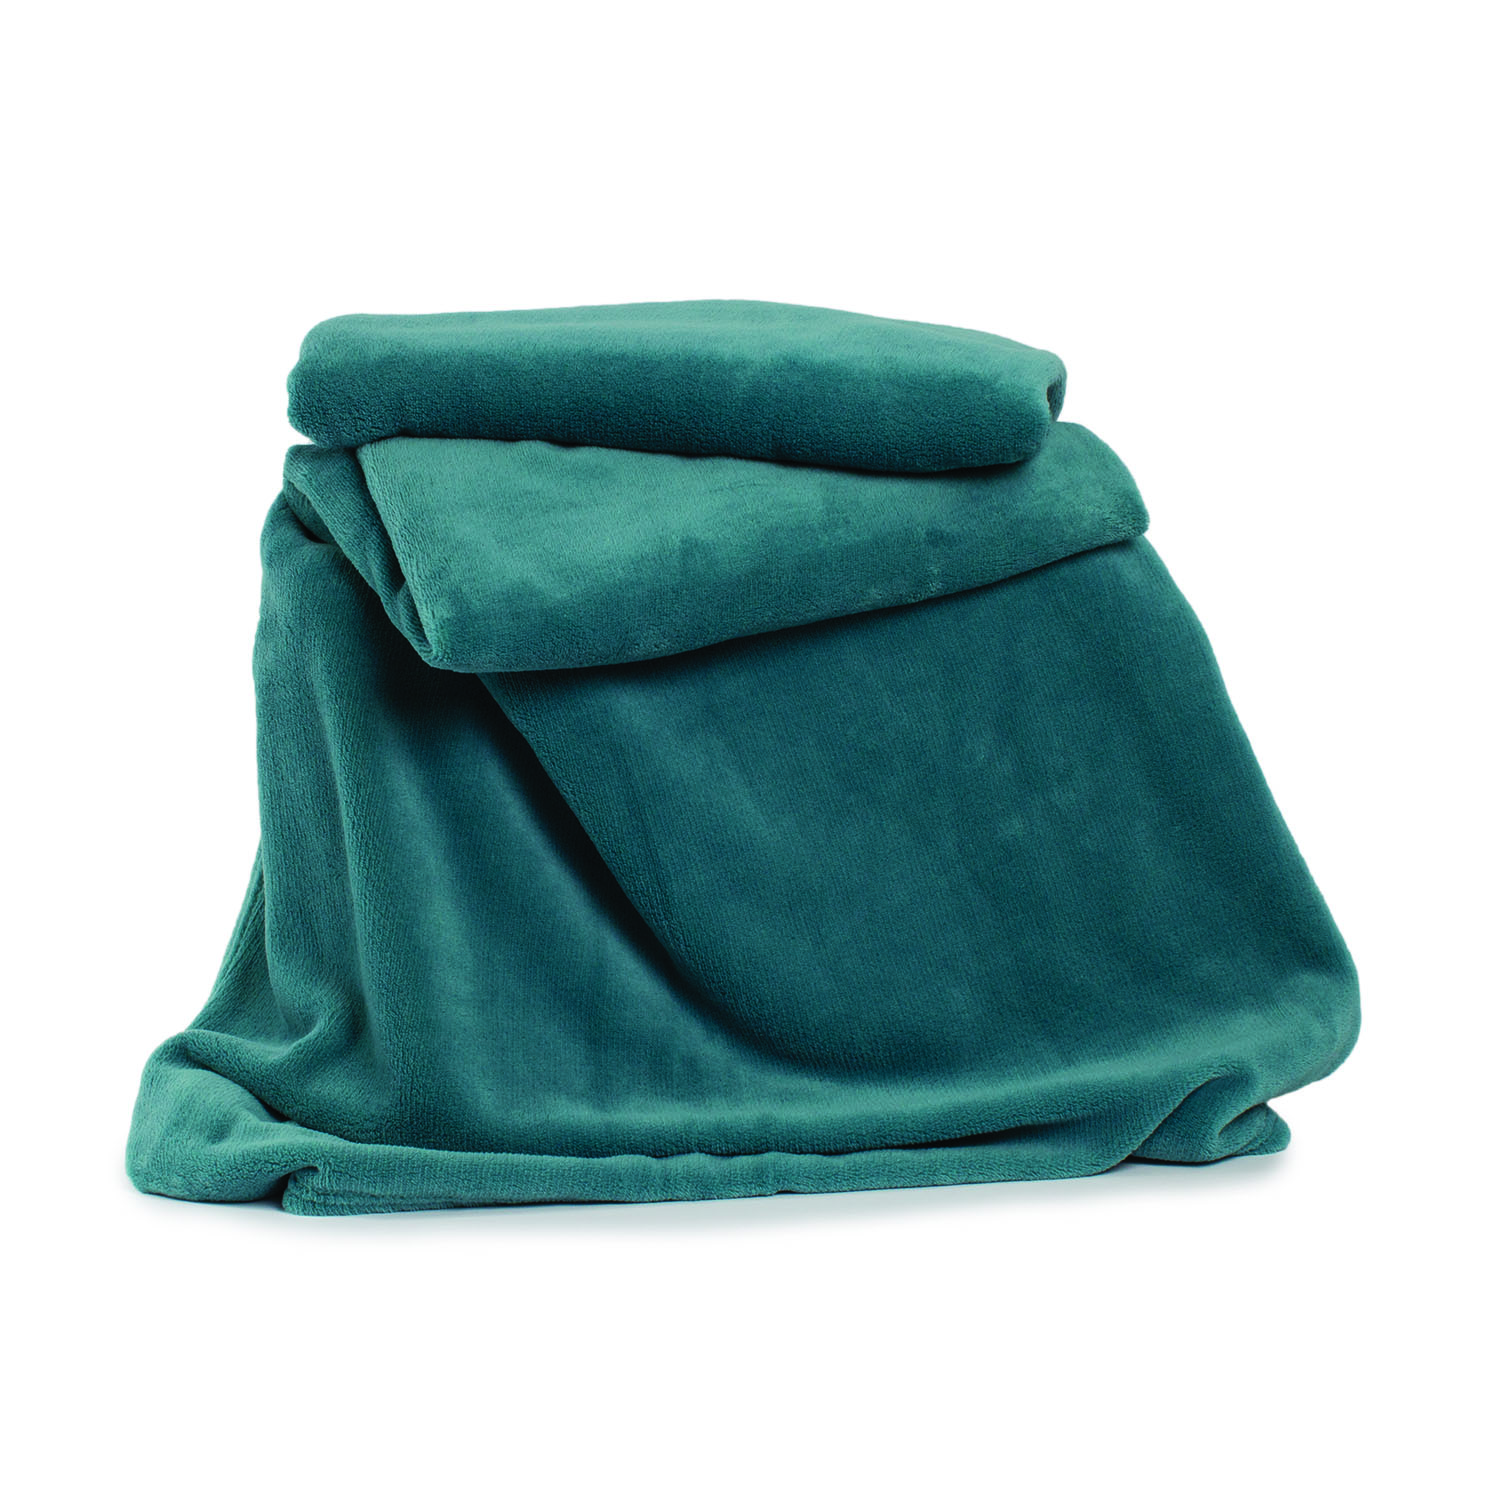 Deyongs Snuggle Touch Throw 140x180 Everglade